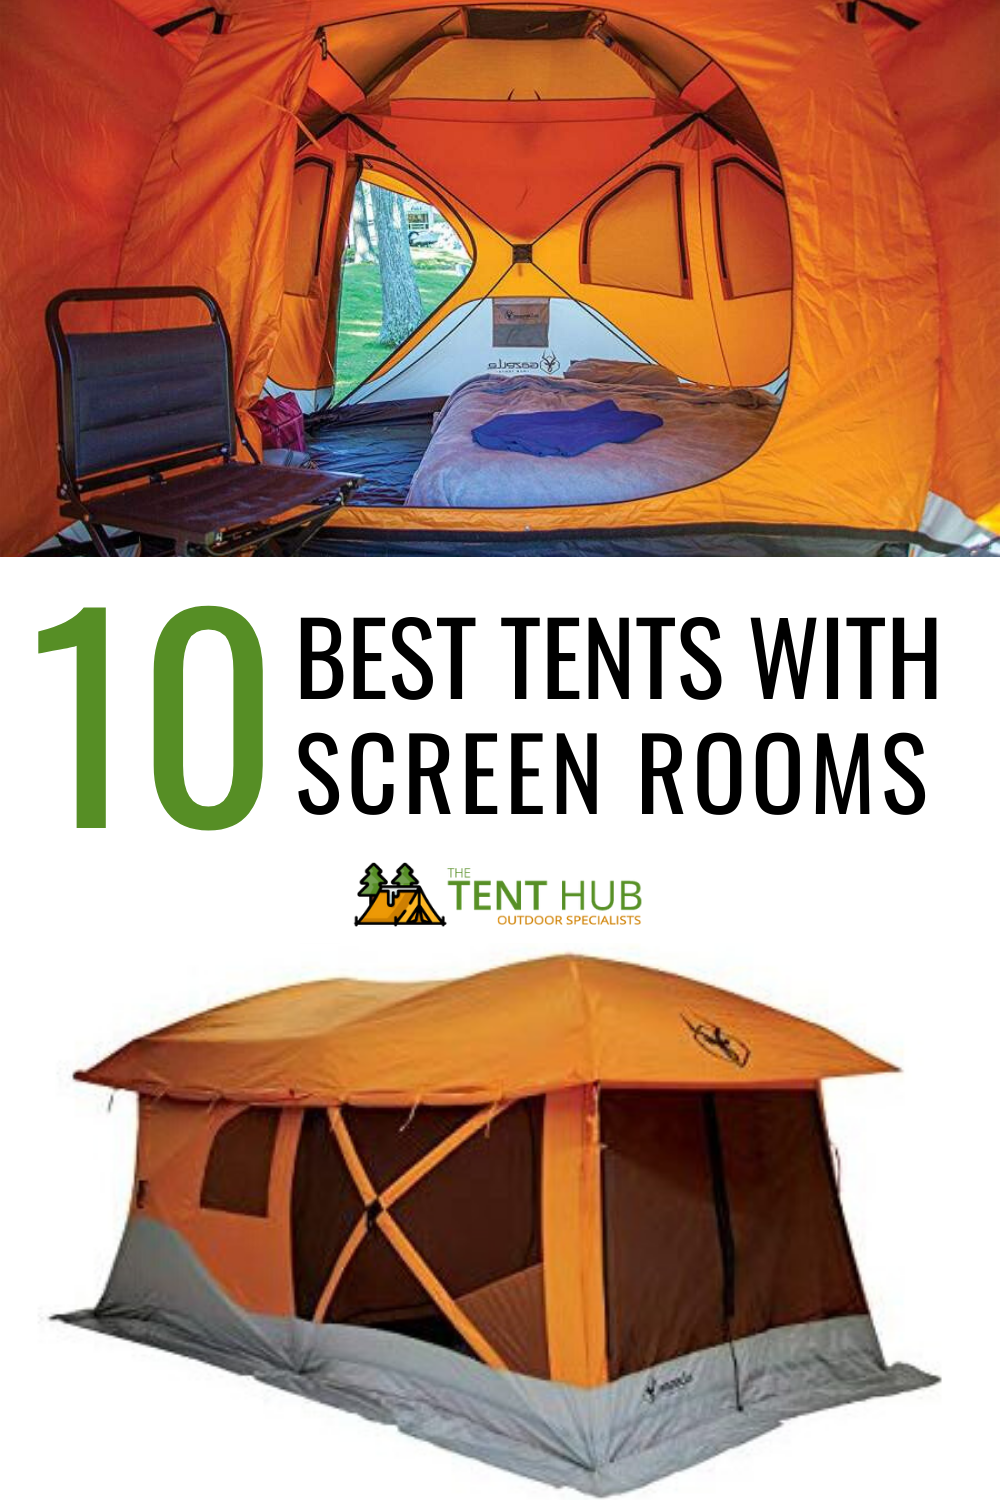 Photo of The Tent Hub | Outdoor Specialists